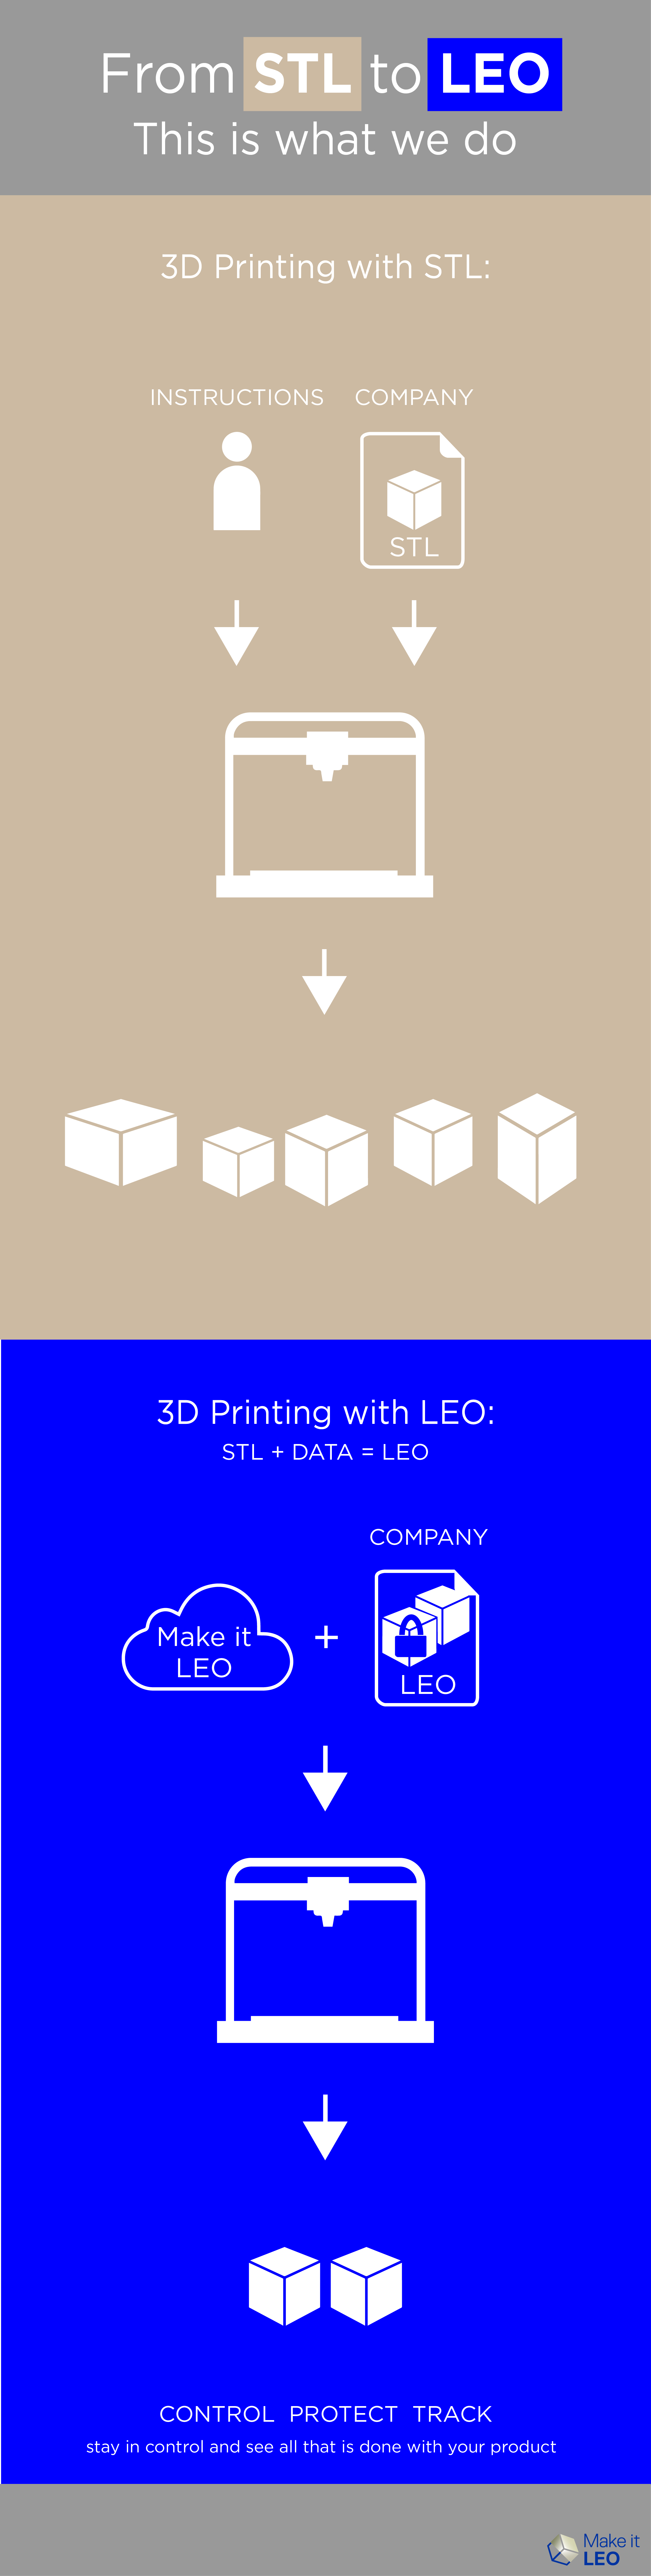 From STL to LEO - This is What We Do - #infographic by Make it LEO